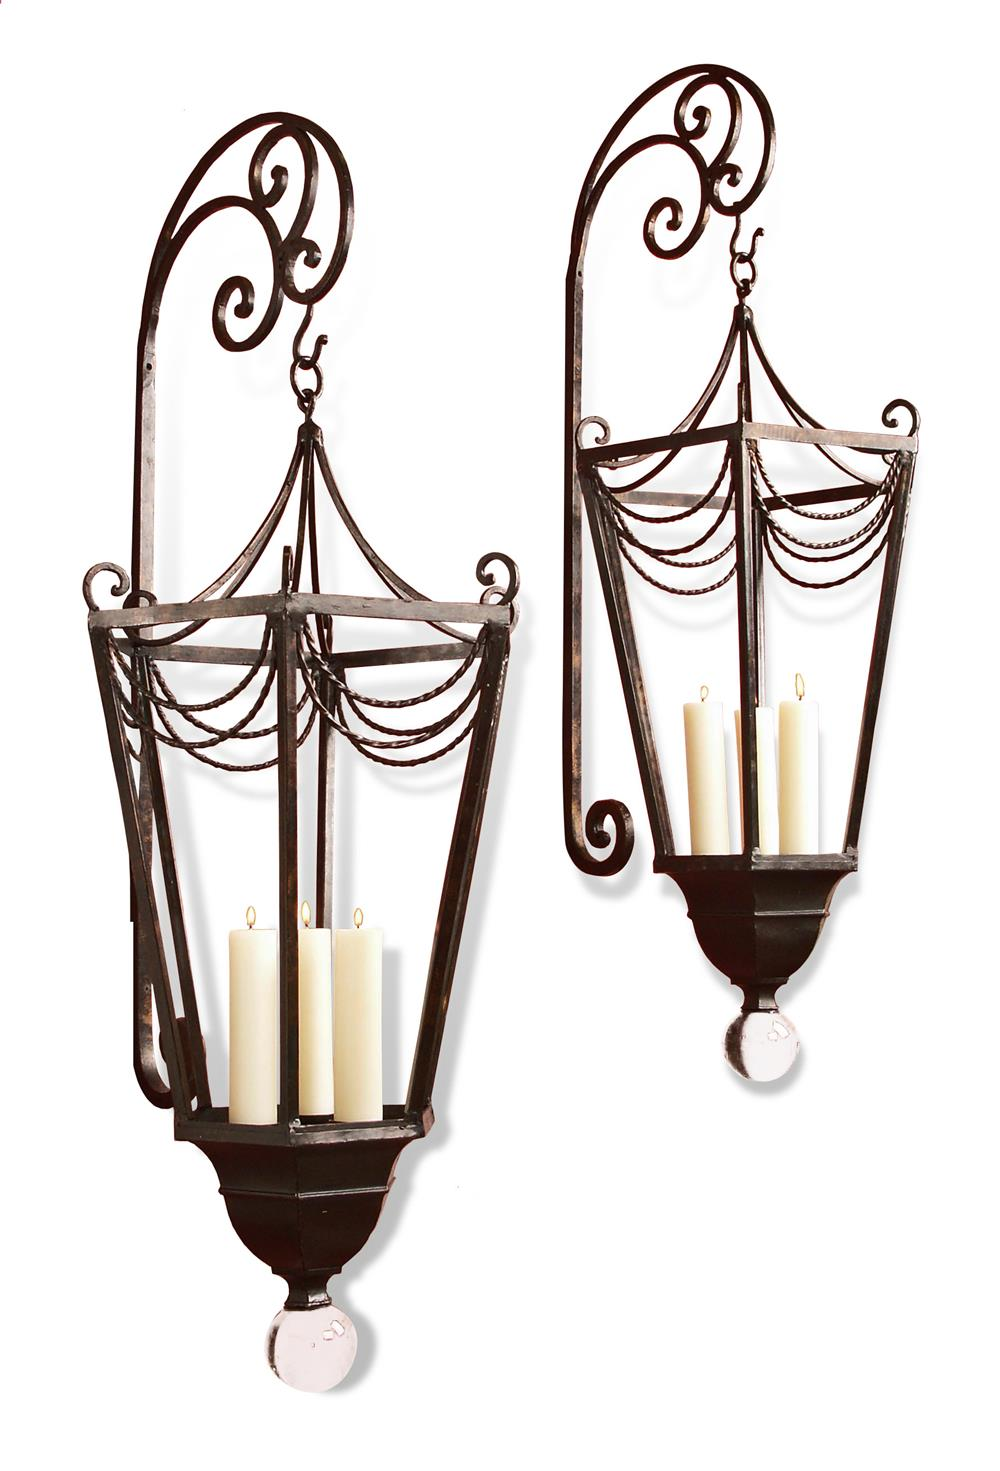 Wall Sconces Candles Lantern : Perpignon Large Metal Ornate French Wall Candle Sconce Lanterns Kathy Kuo Home